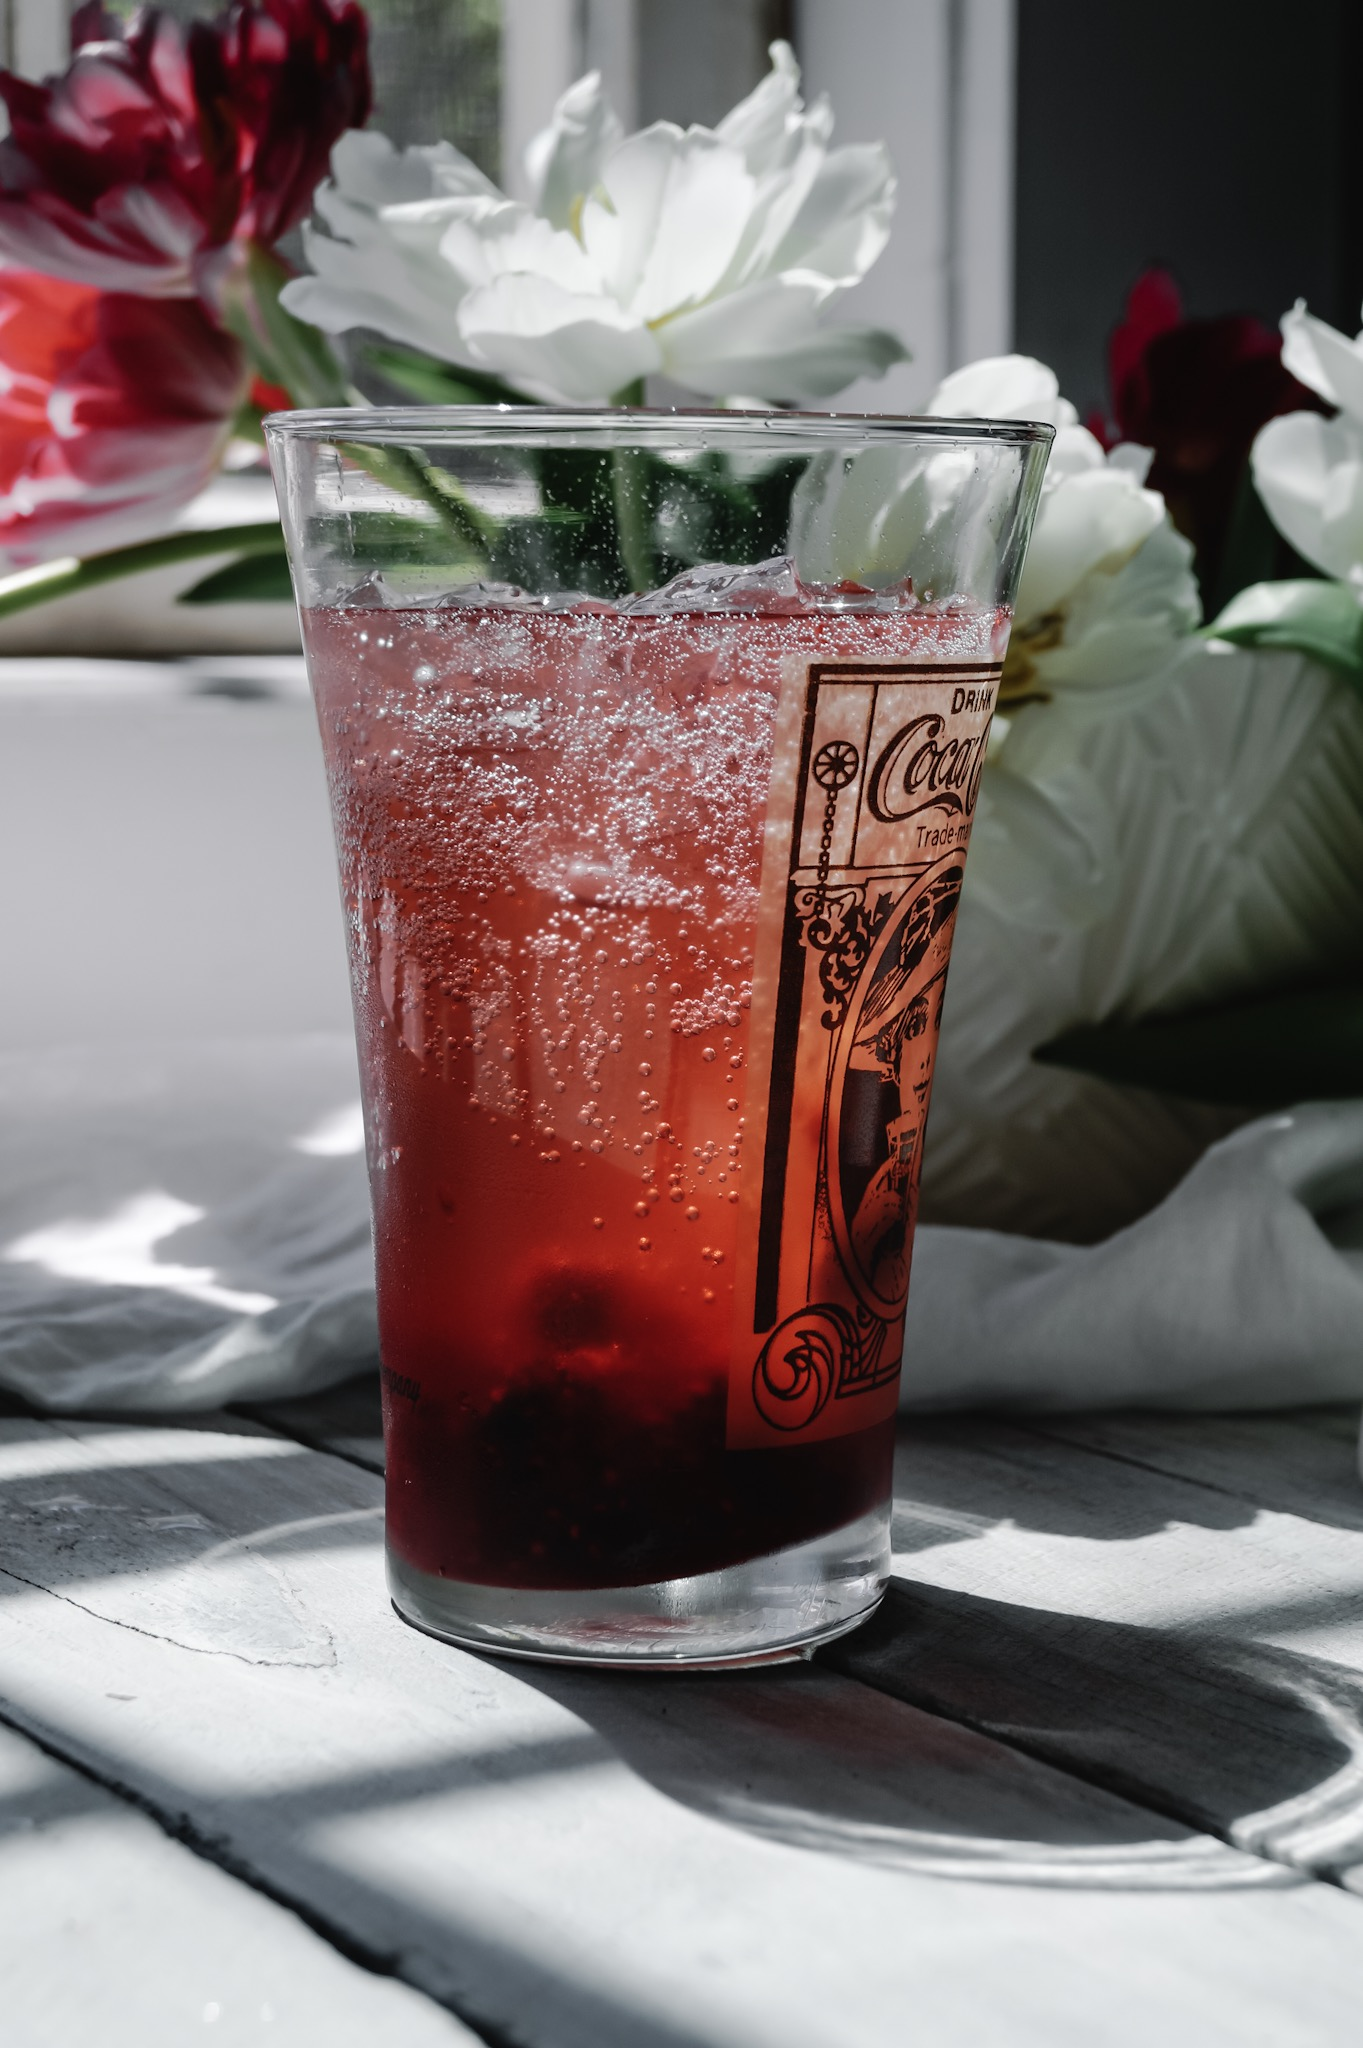 Use a lemony sparkling water to compliment the raspberry syrup.